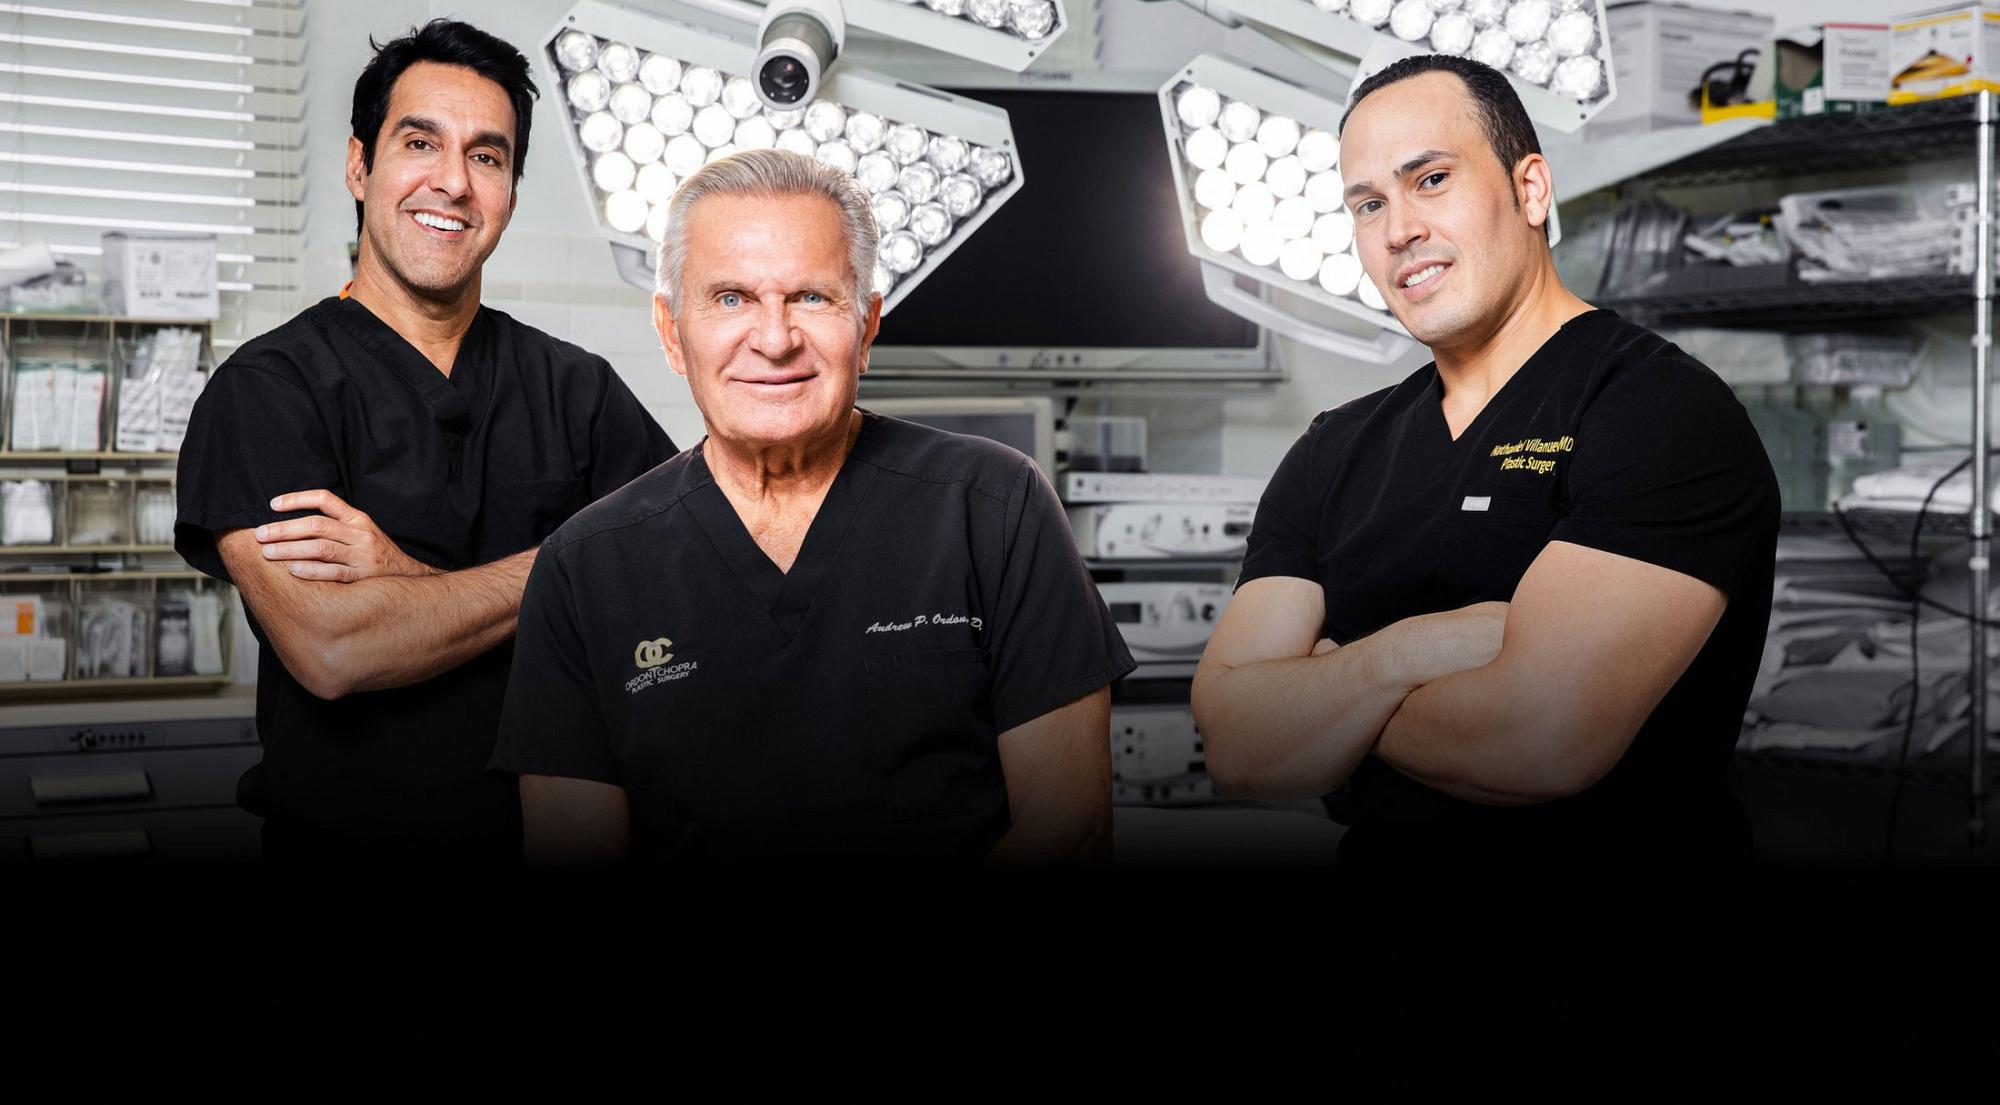 Beverly Hills Plastic Surgeons, Dr. Chopra, Dr. Ordon, and Dr Villanueva